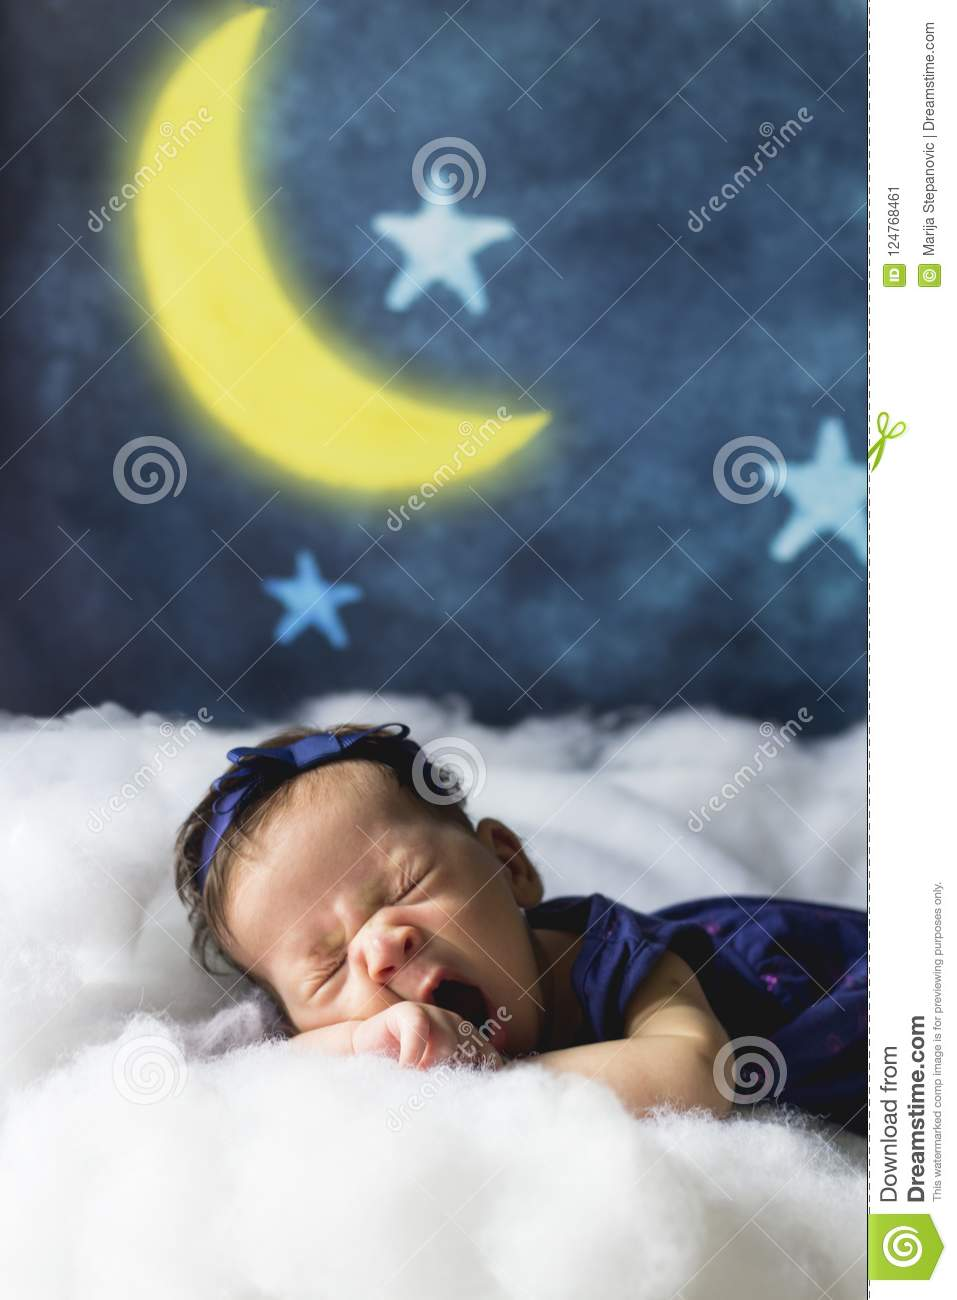 Good Morning Wishes With Baby Pictures Images Page 14